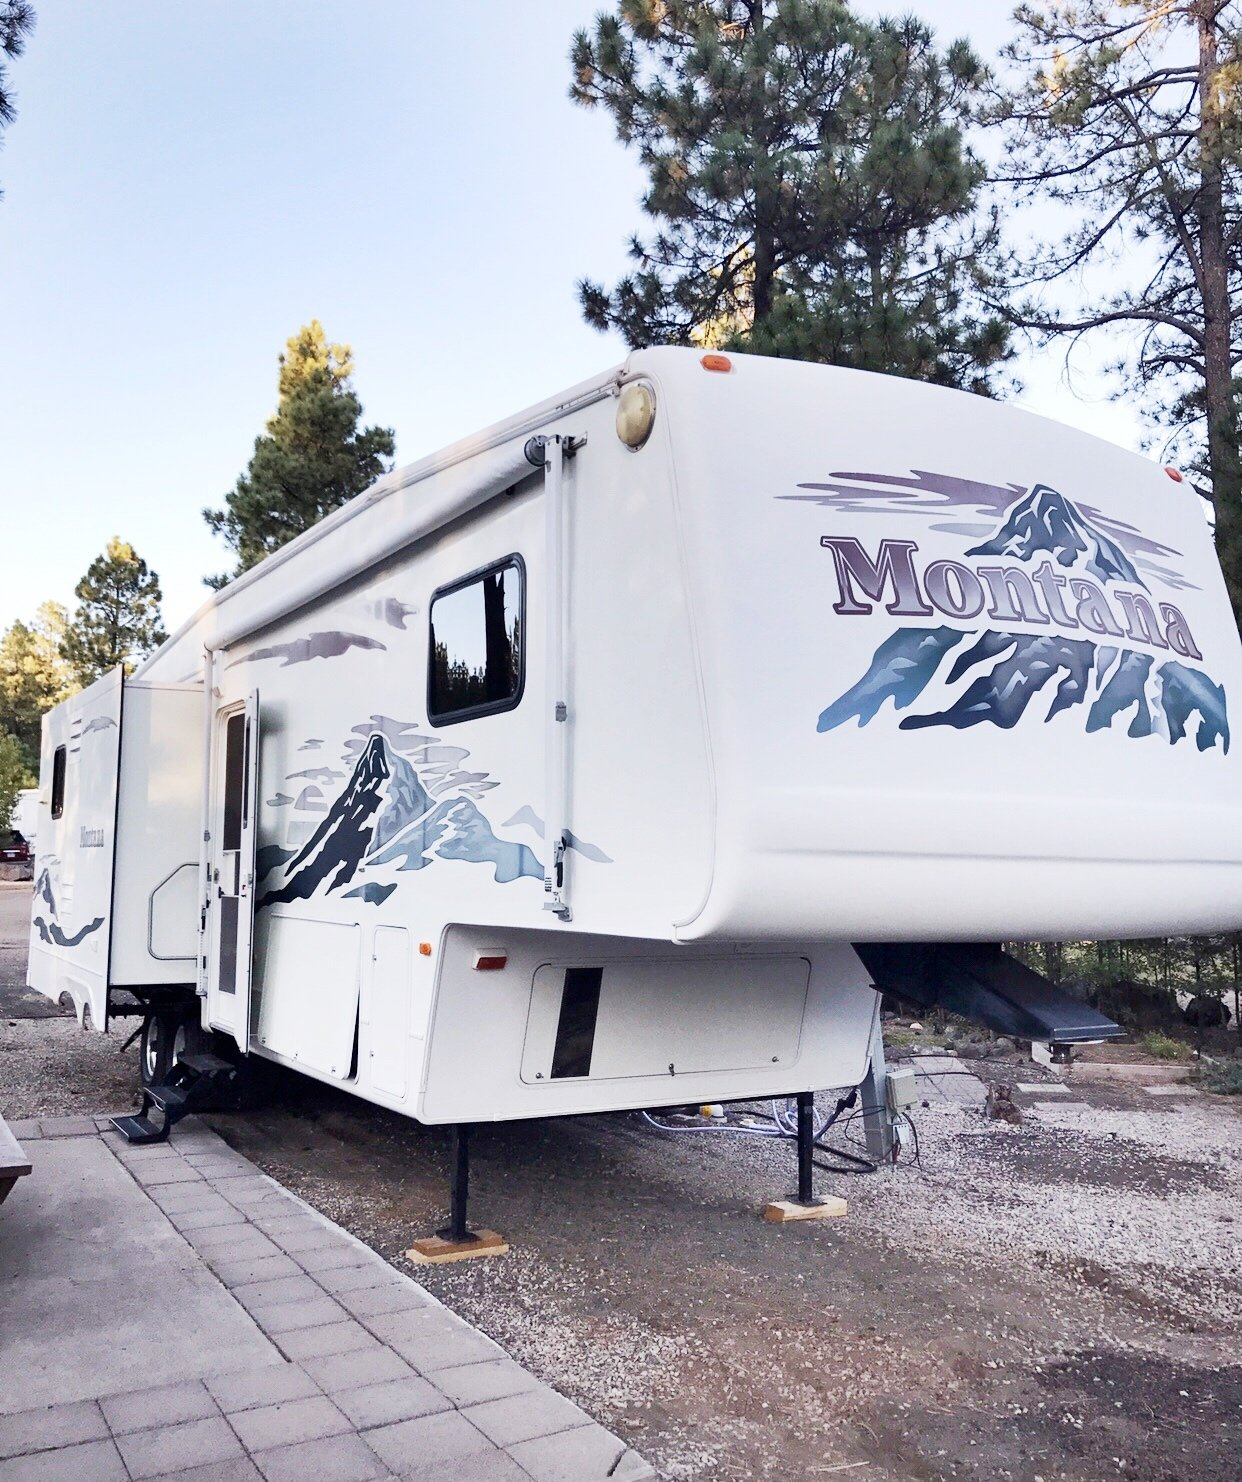 A Jayco Fifth Wheel camper.